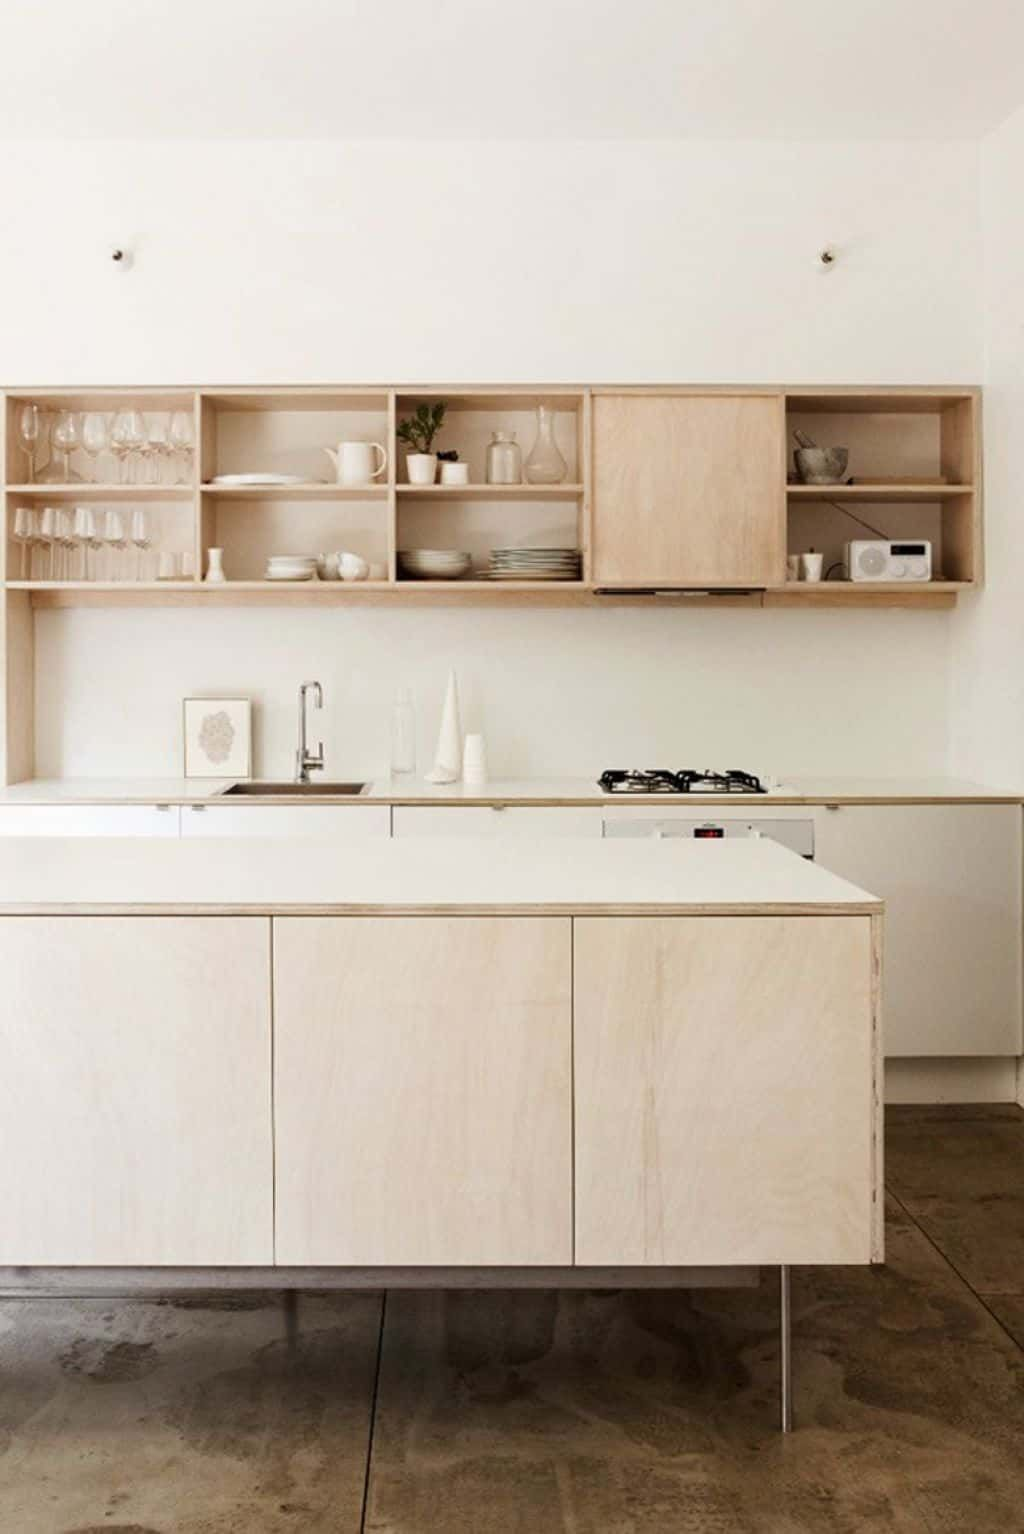 Distinctive Plywood Furniture For Your House -  Minimalist Kitchen With Plywood Furniture : Distinctive Plywood Furniture For Your House  - #ApartmentDesign #Chairs #CoffeeTables #distinctive #furniture #FurnitureCollection #GeorgeNelson #house #Joinery #PhilippeStarck #plywood #PlywoodFurniture #SideChairs #SideTables #Stools